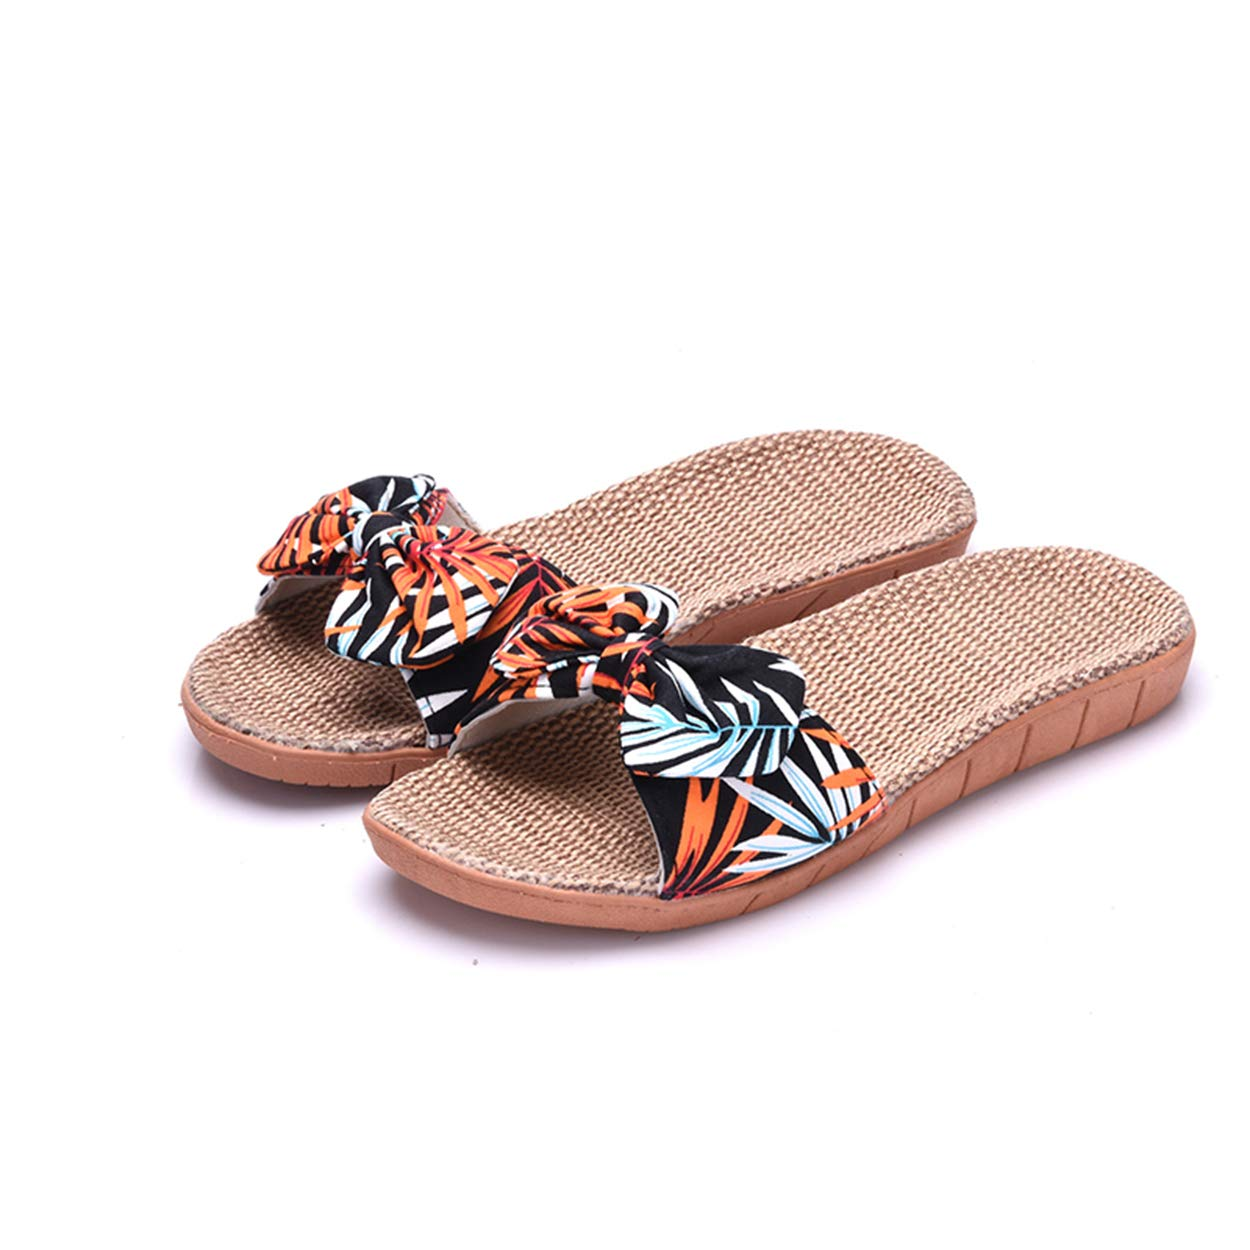 Top 6 Home Slippers Summer